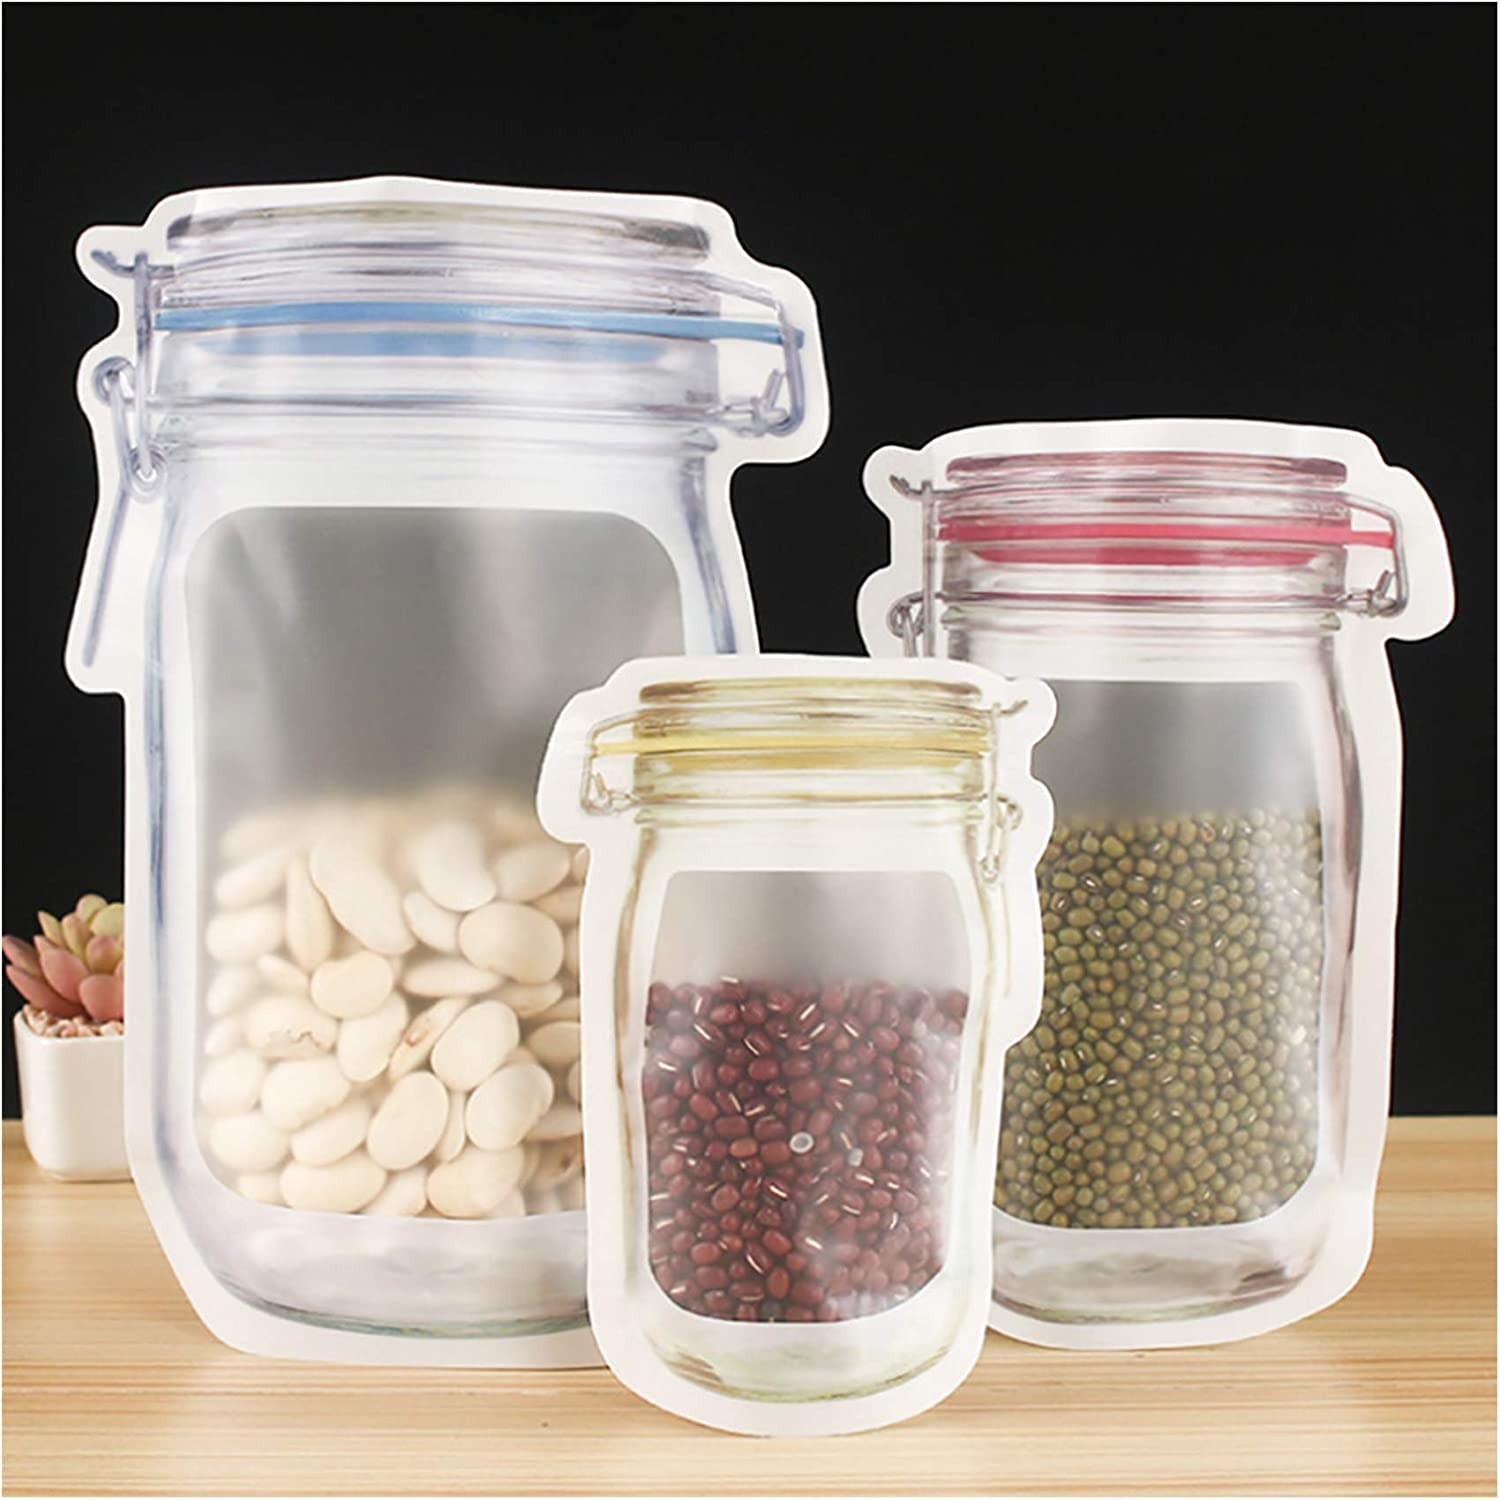 Three Maso jar bags filled with lentils and beans